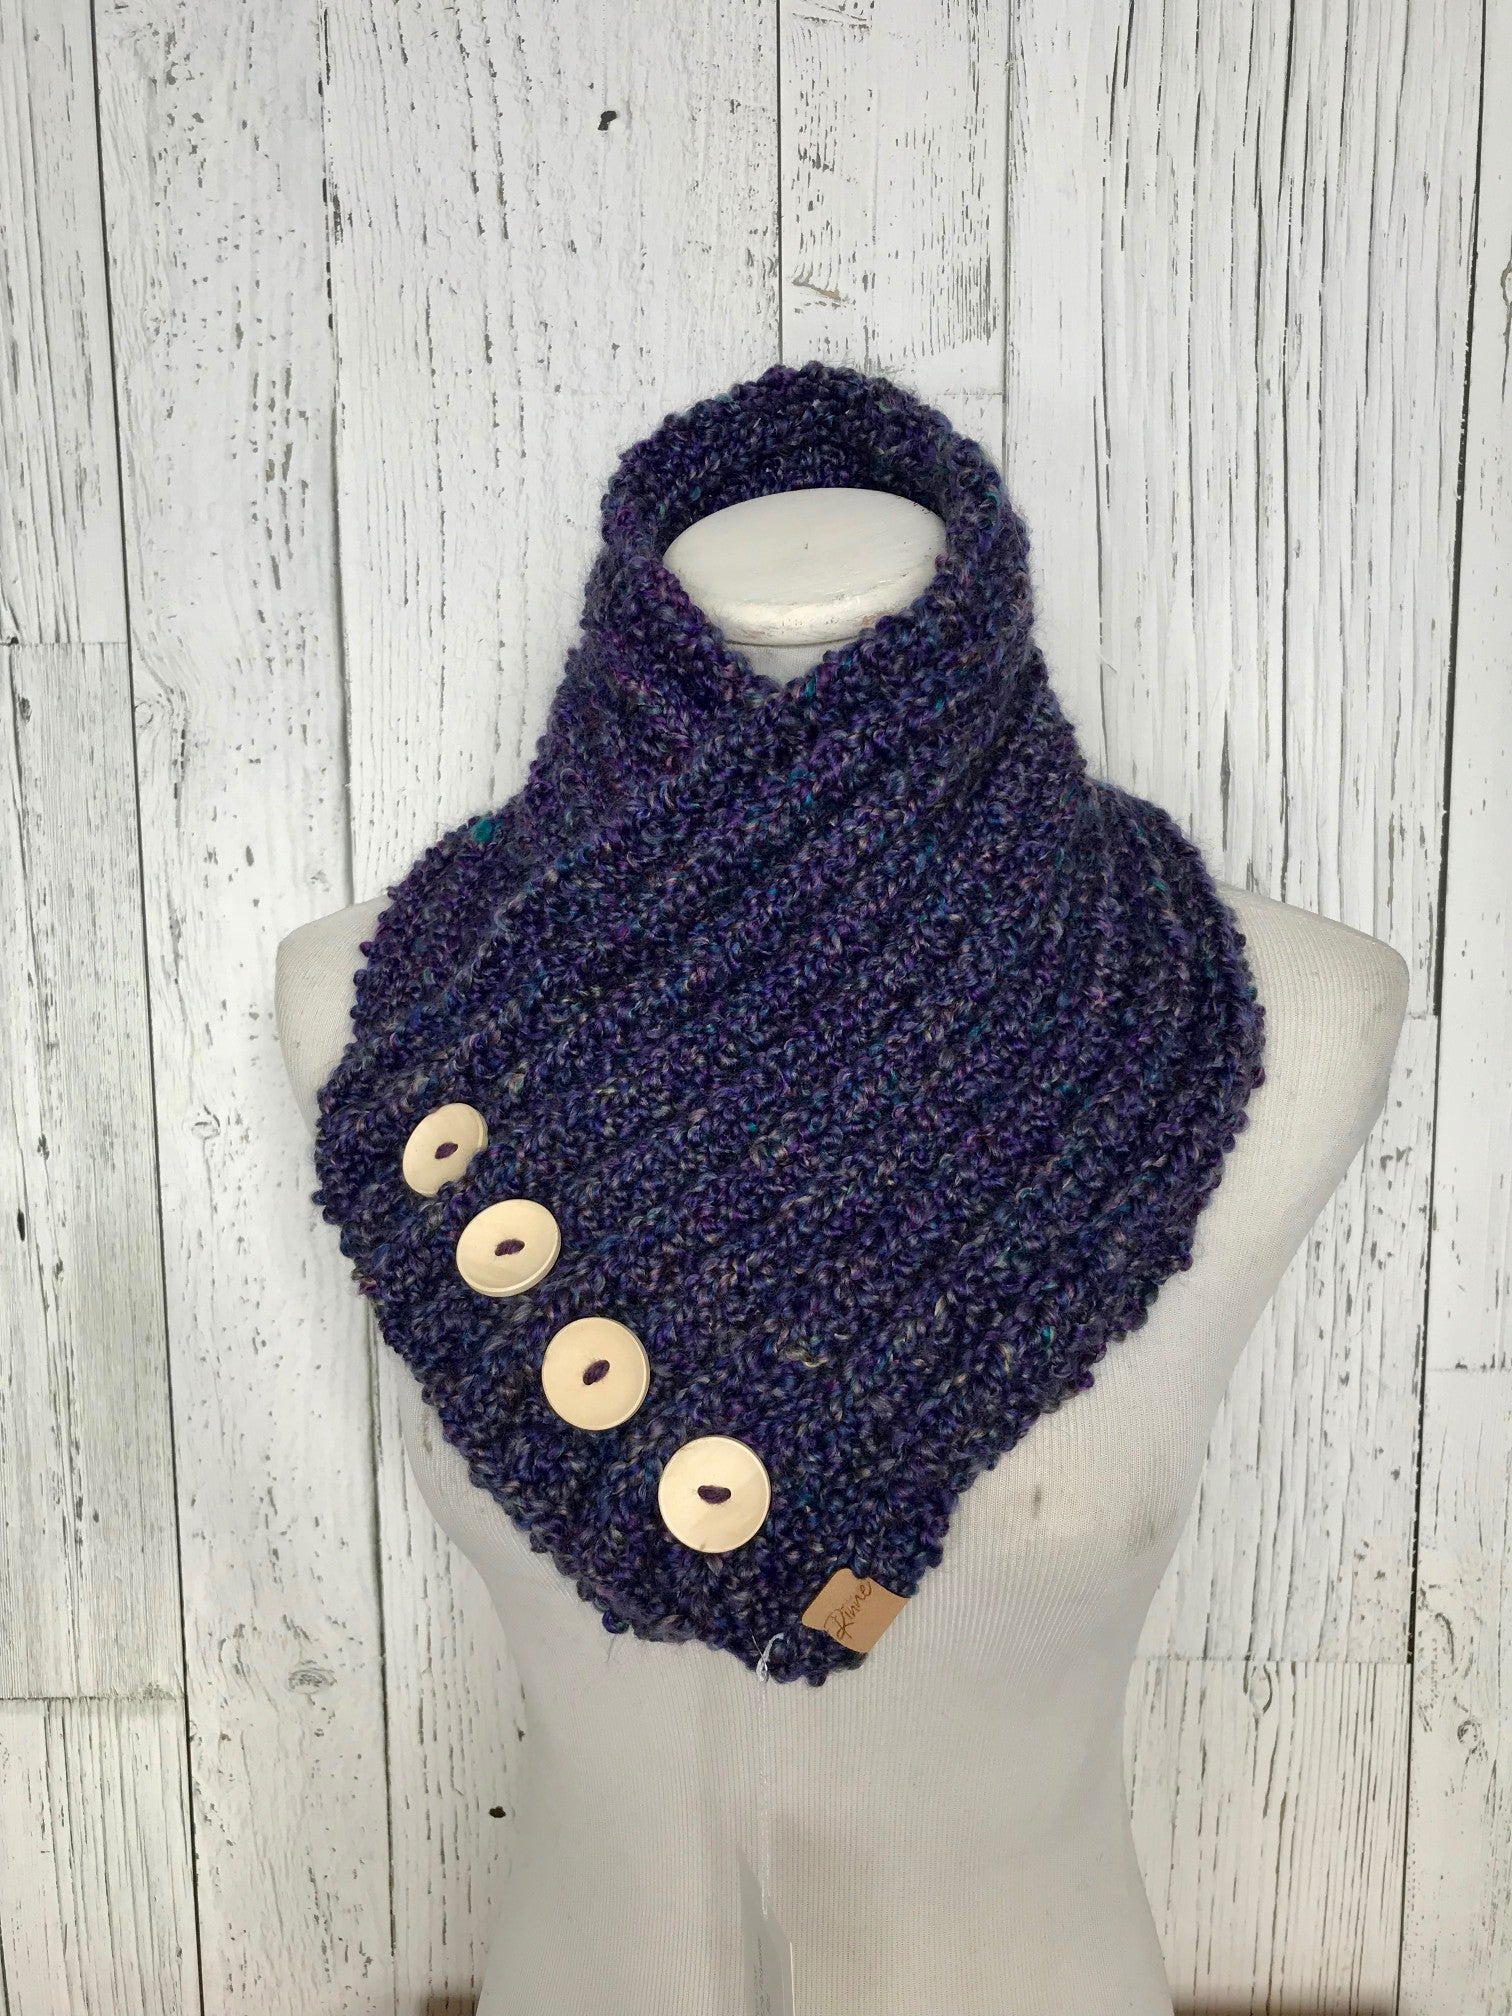 Classic Knit Button Cowl in violet purple with specks of blue with natural wood buttons